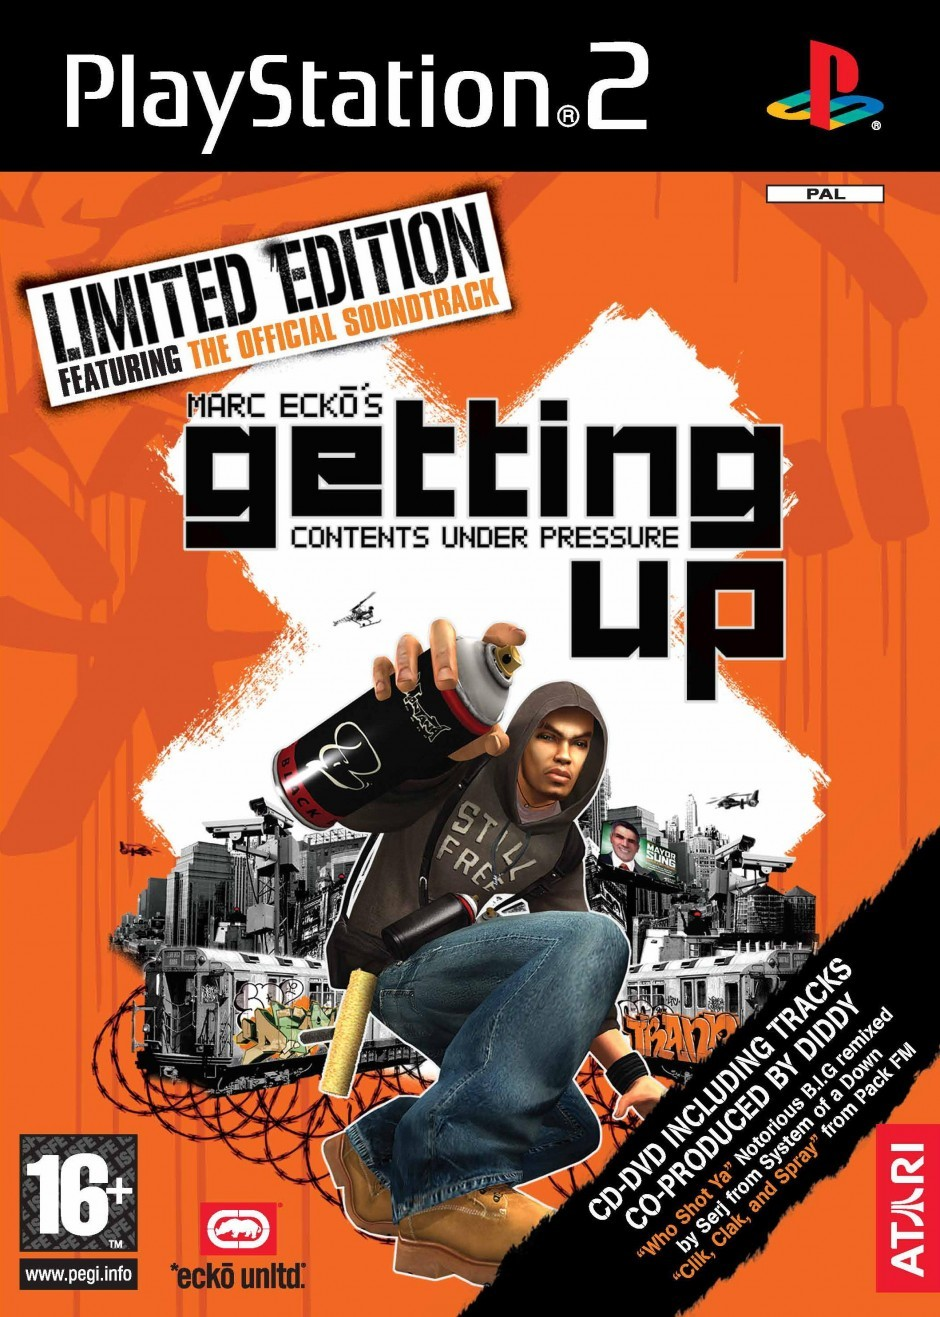 Marc ecko s getting up contents under pressure sequel